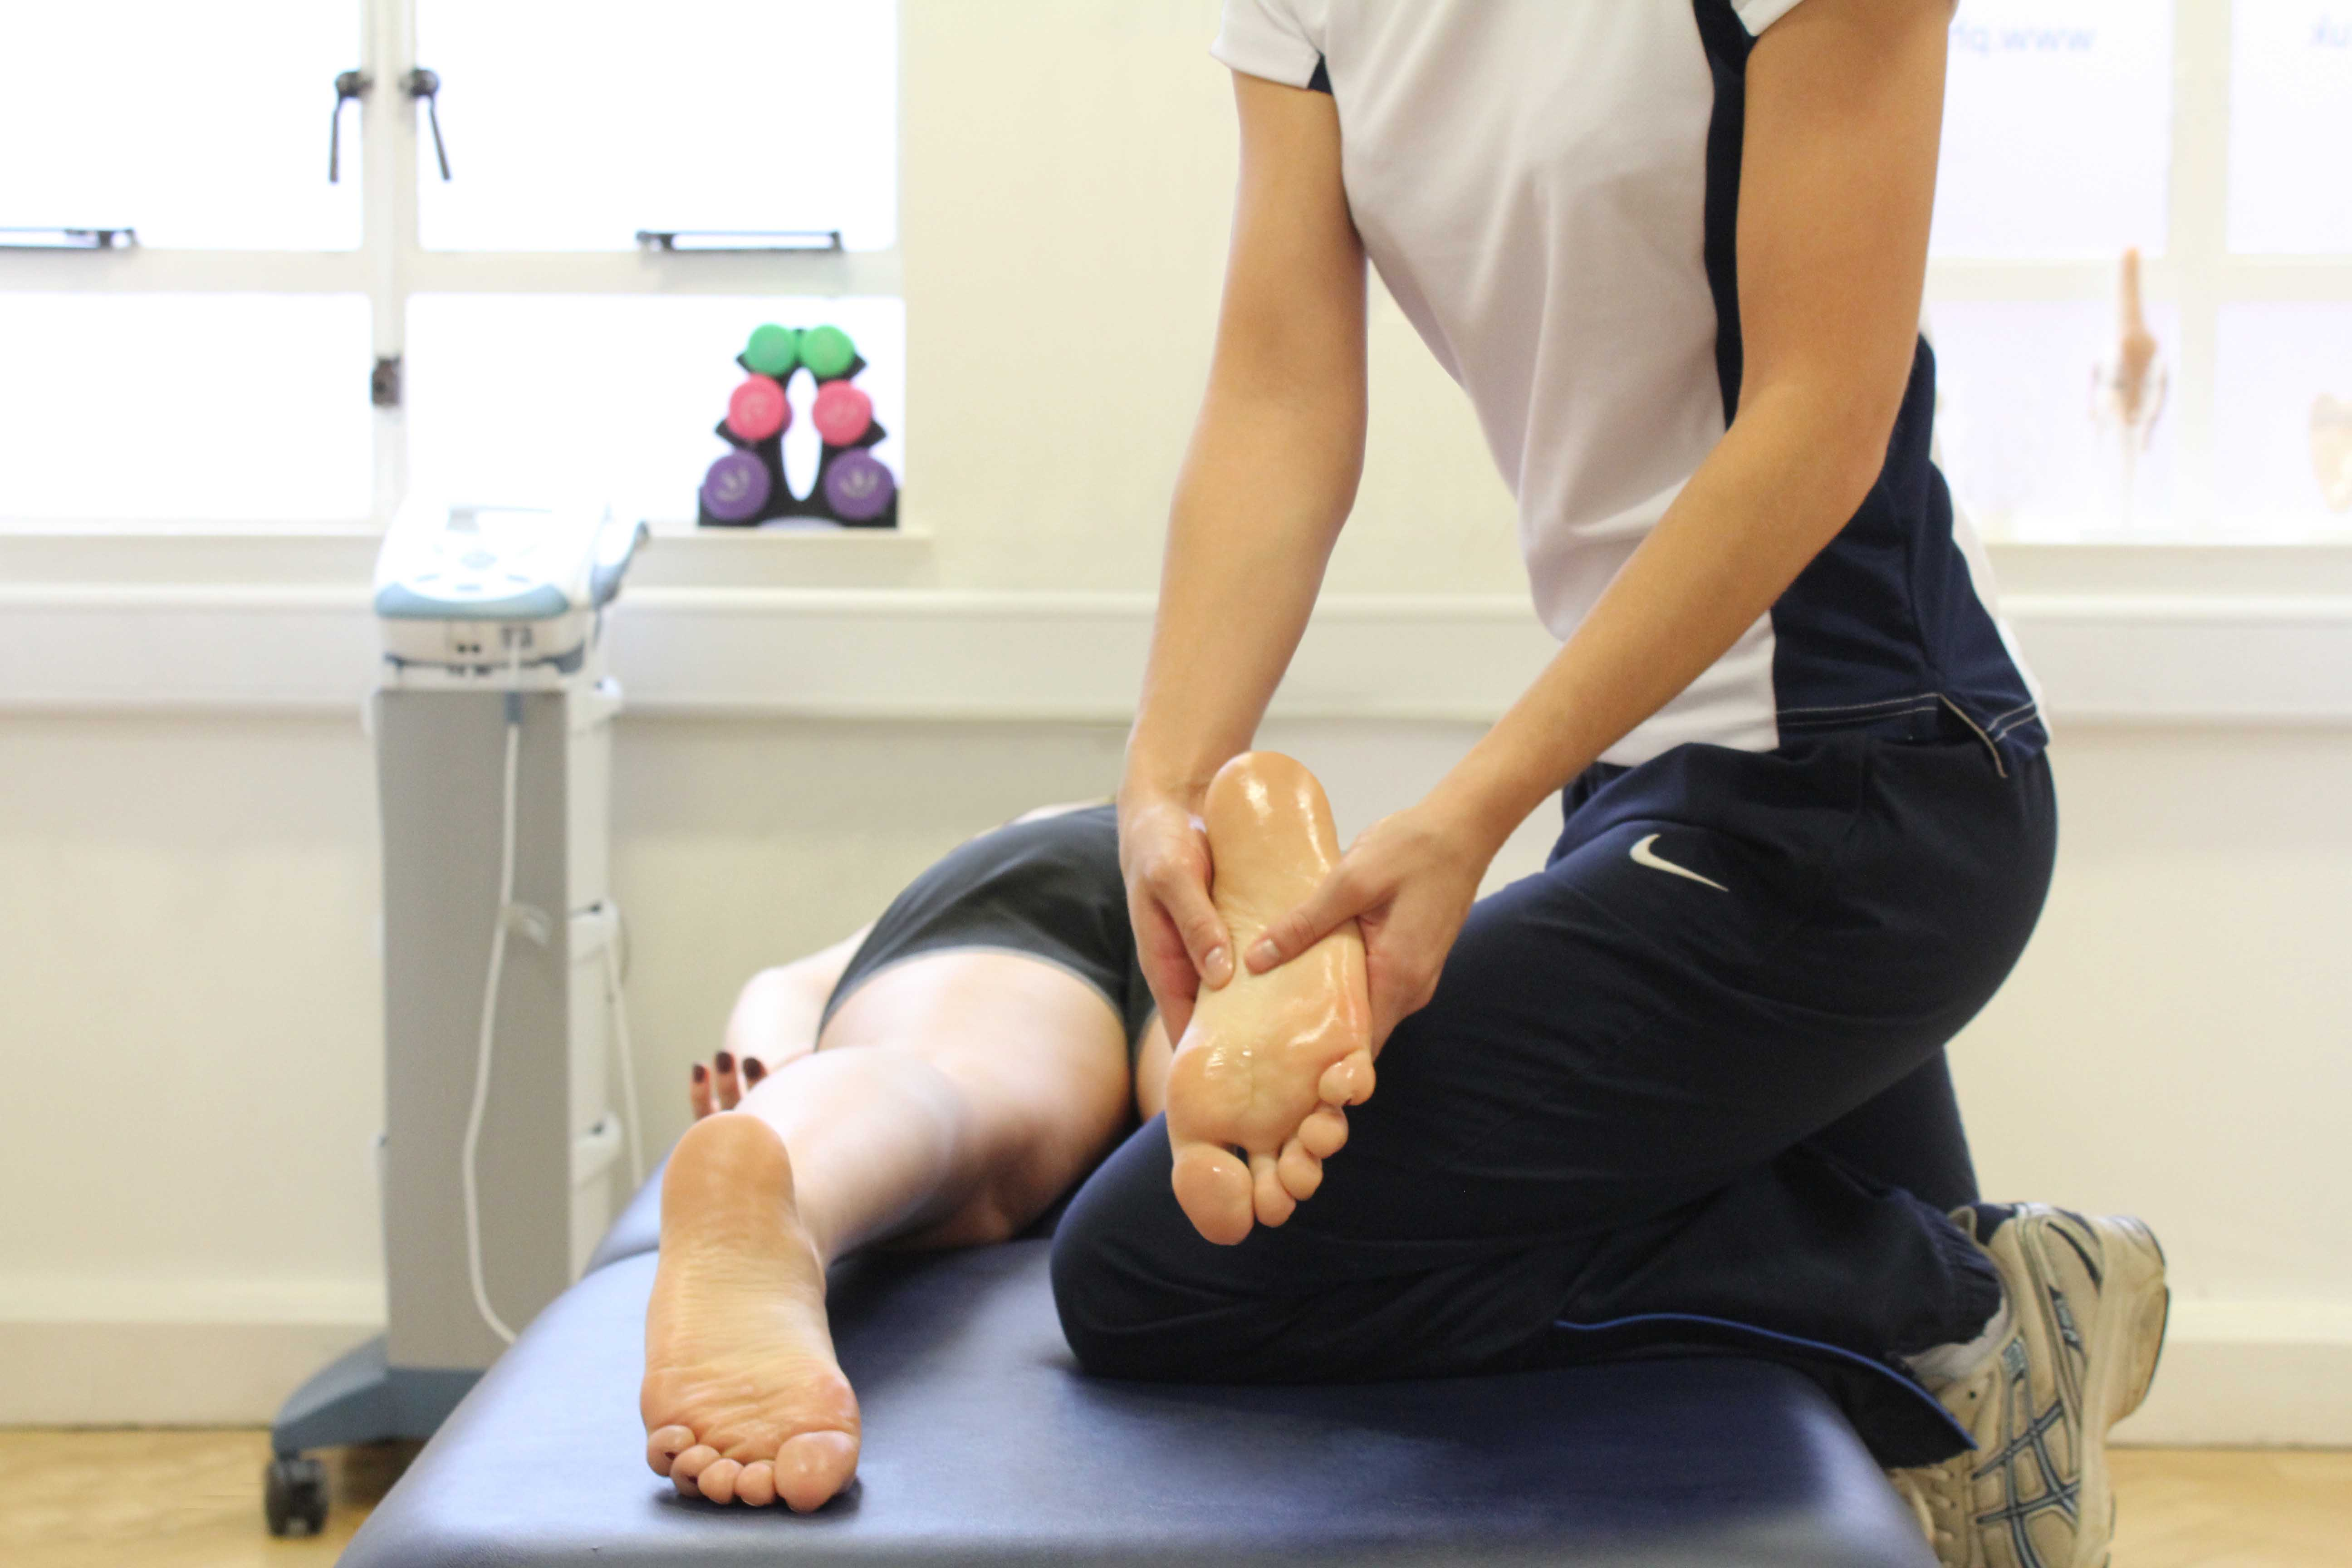 Therapist massage of planta fascia, bunions and toes